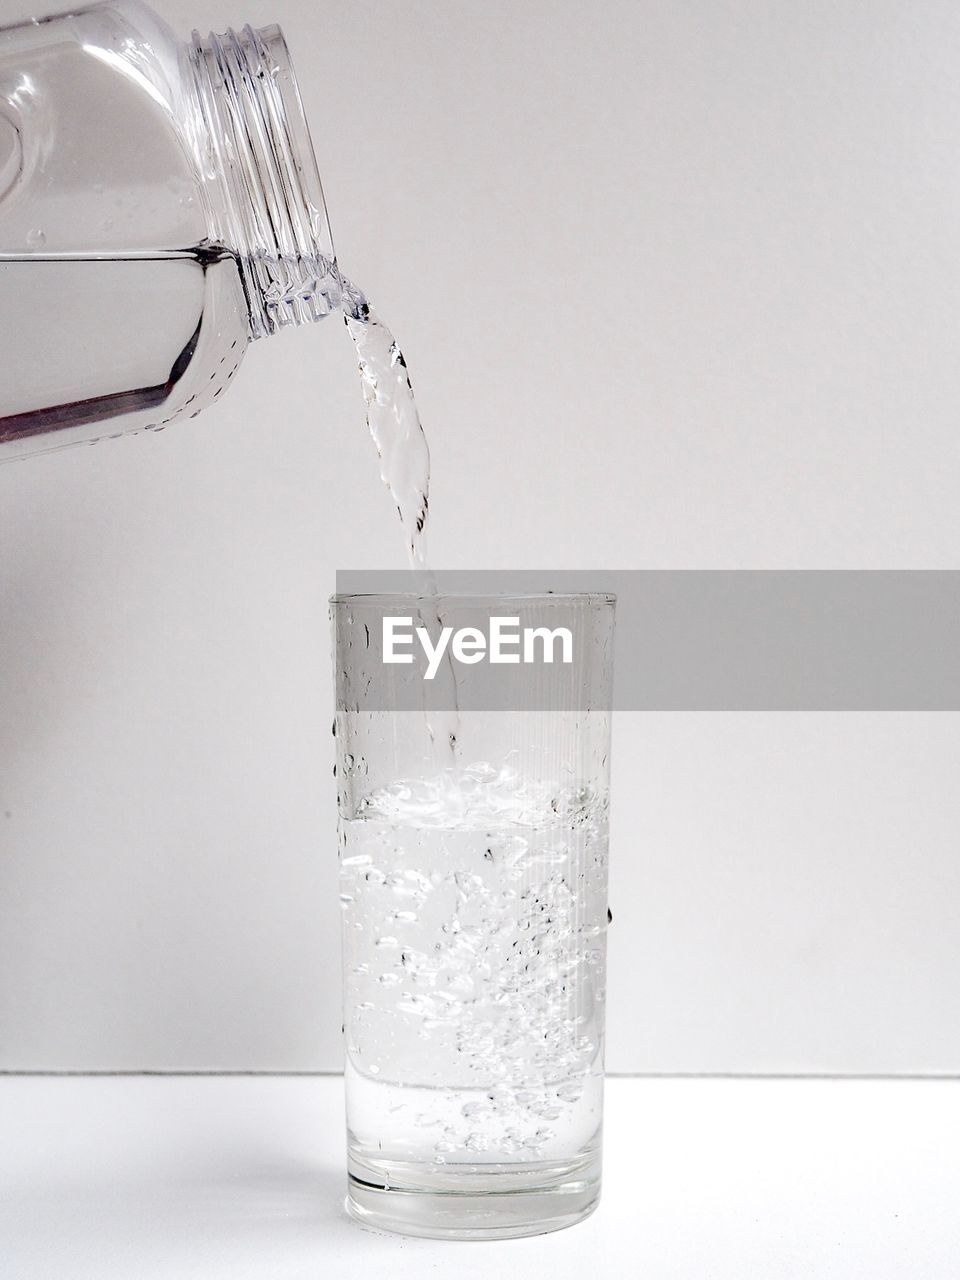 water, studio shot, glass, pouring, drinking glass, indoors, food and drink, household equipment, motion, refreshment, splashing, drink, no people, white background, close-up, transparent, copy space, nature, freshness, purity, running water